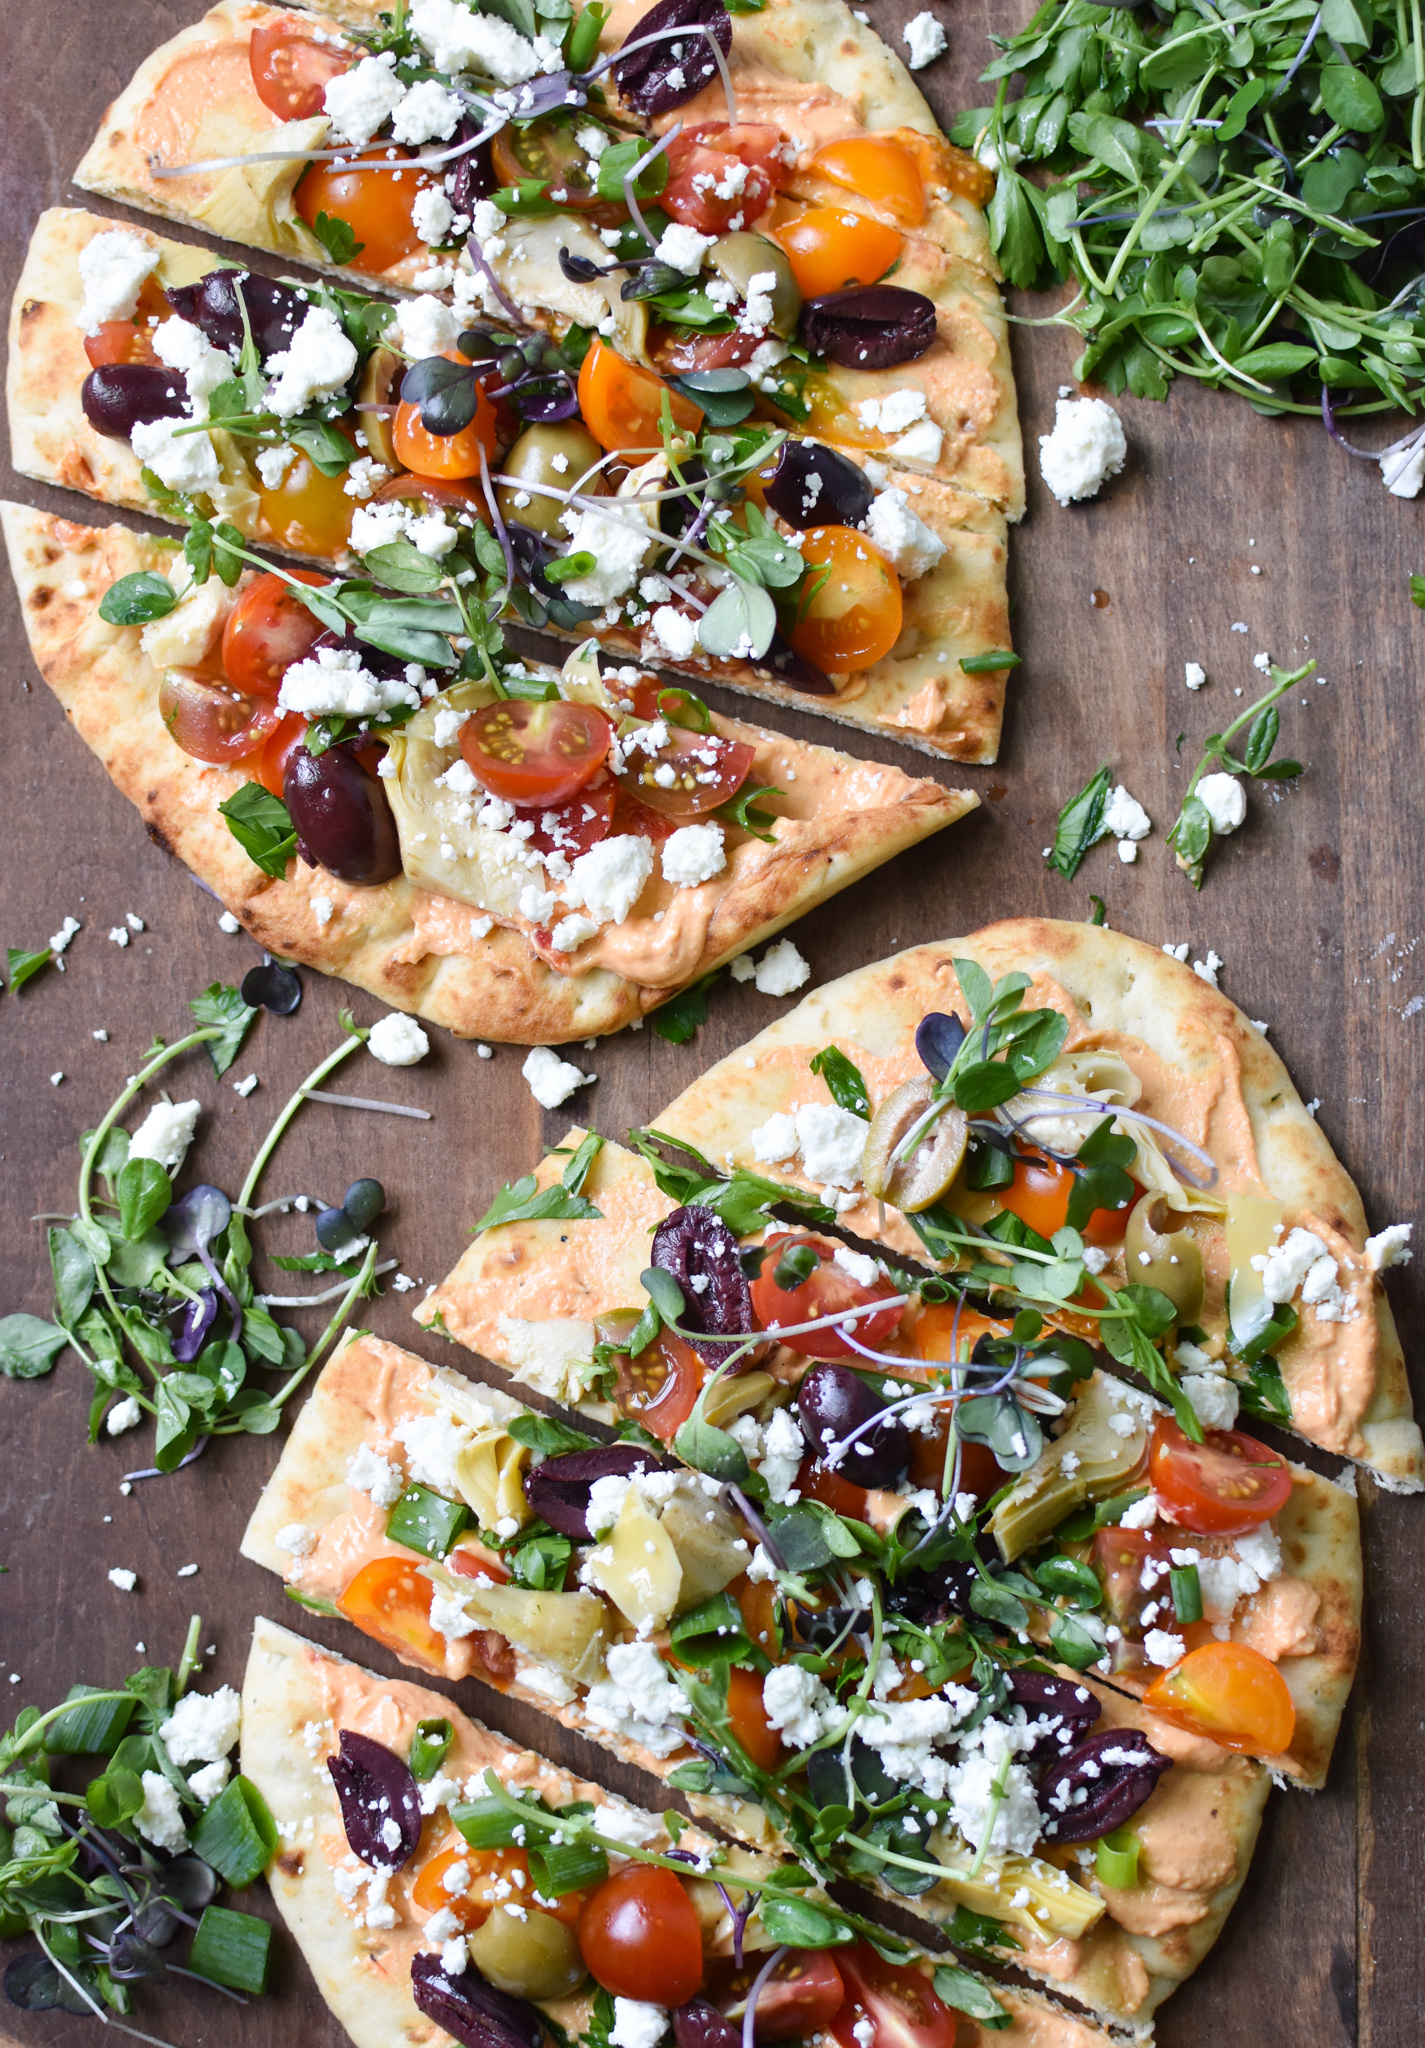 Mediterranean Naan Bread Pizza with greens.